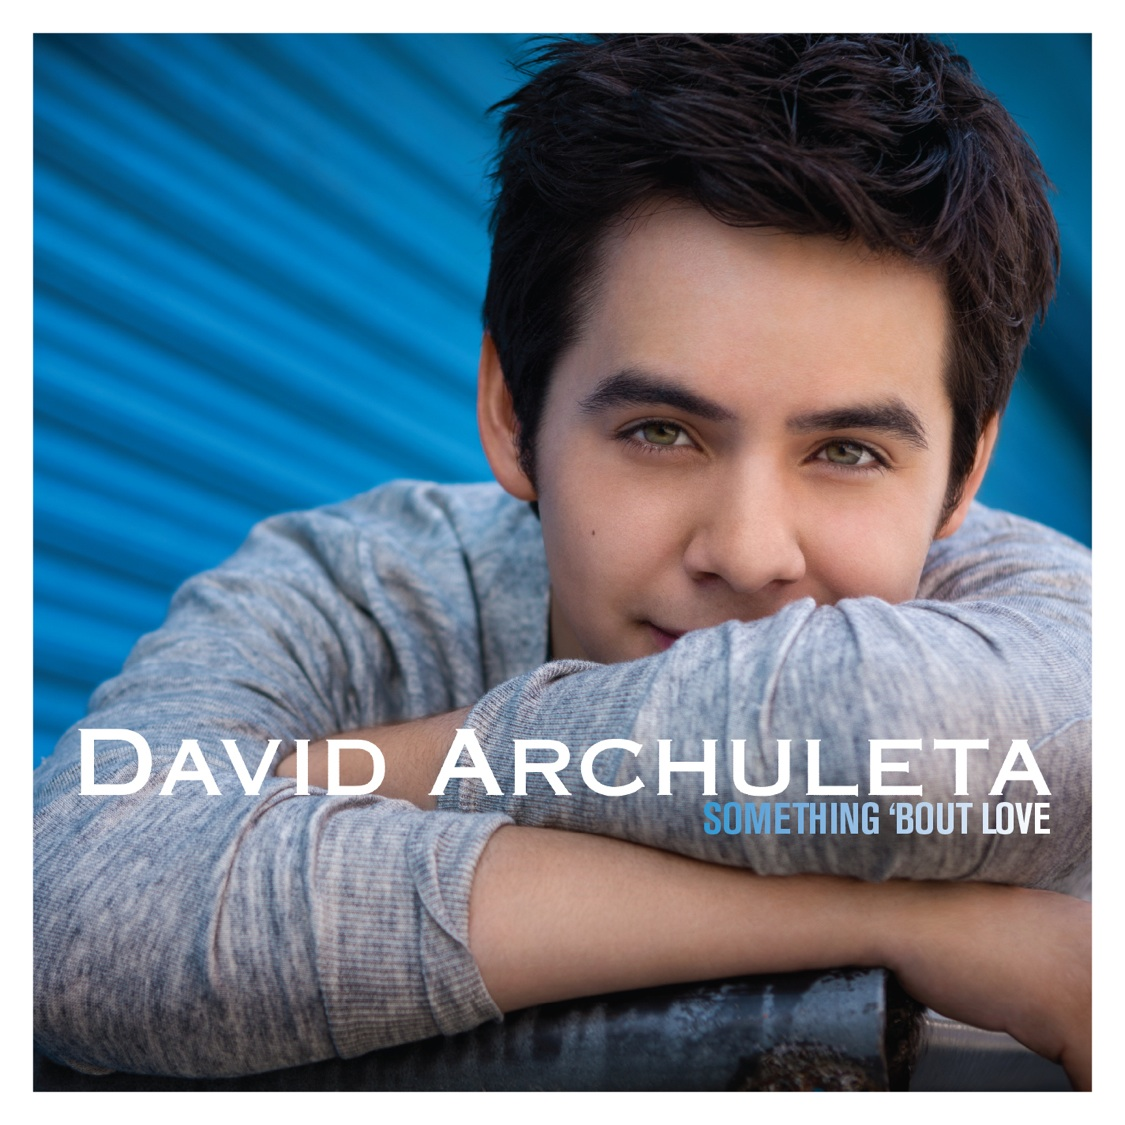 david archuleta - numb lyricsdavid archuleta crush, david archuleta – crush скачать, david archuleta – crush перевод, david archuleta crush mp3, david archuleta - numb, david archuleta mp3, david archuleta something 'bout love, david archuleta - numb lyrics, david archuleta 2016, david archuleta lyrics, david archuleta instagram, david archuleta a little prayer, david archuleta my hands, david archuleta christmas, david archuleta you can, david archuleta youtube, david archuleta family, david archuleta desperate, david archuleta prayer, david archuleta mirrors